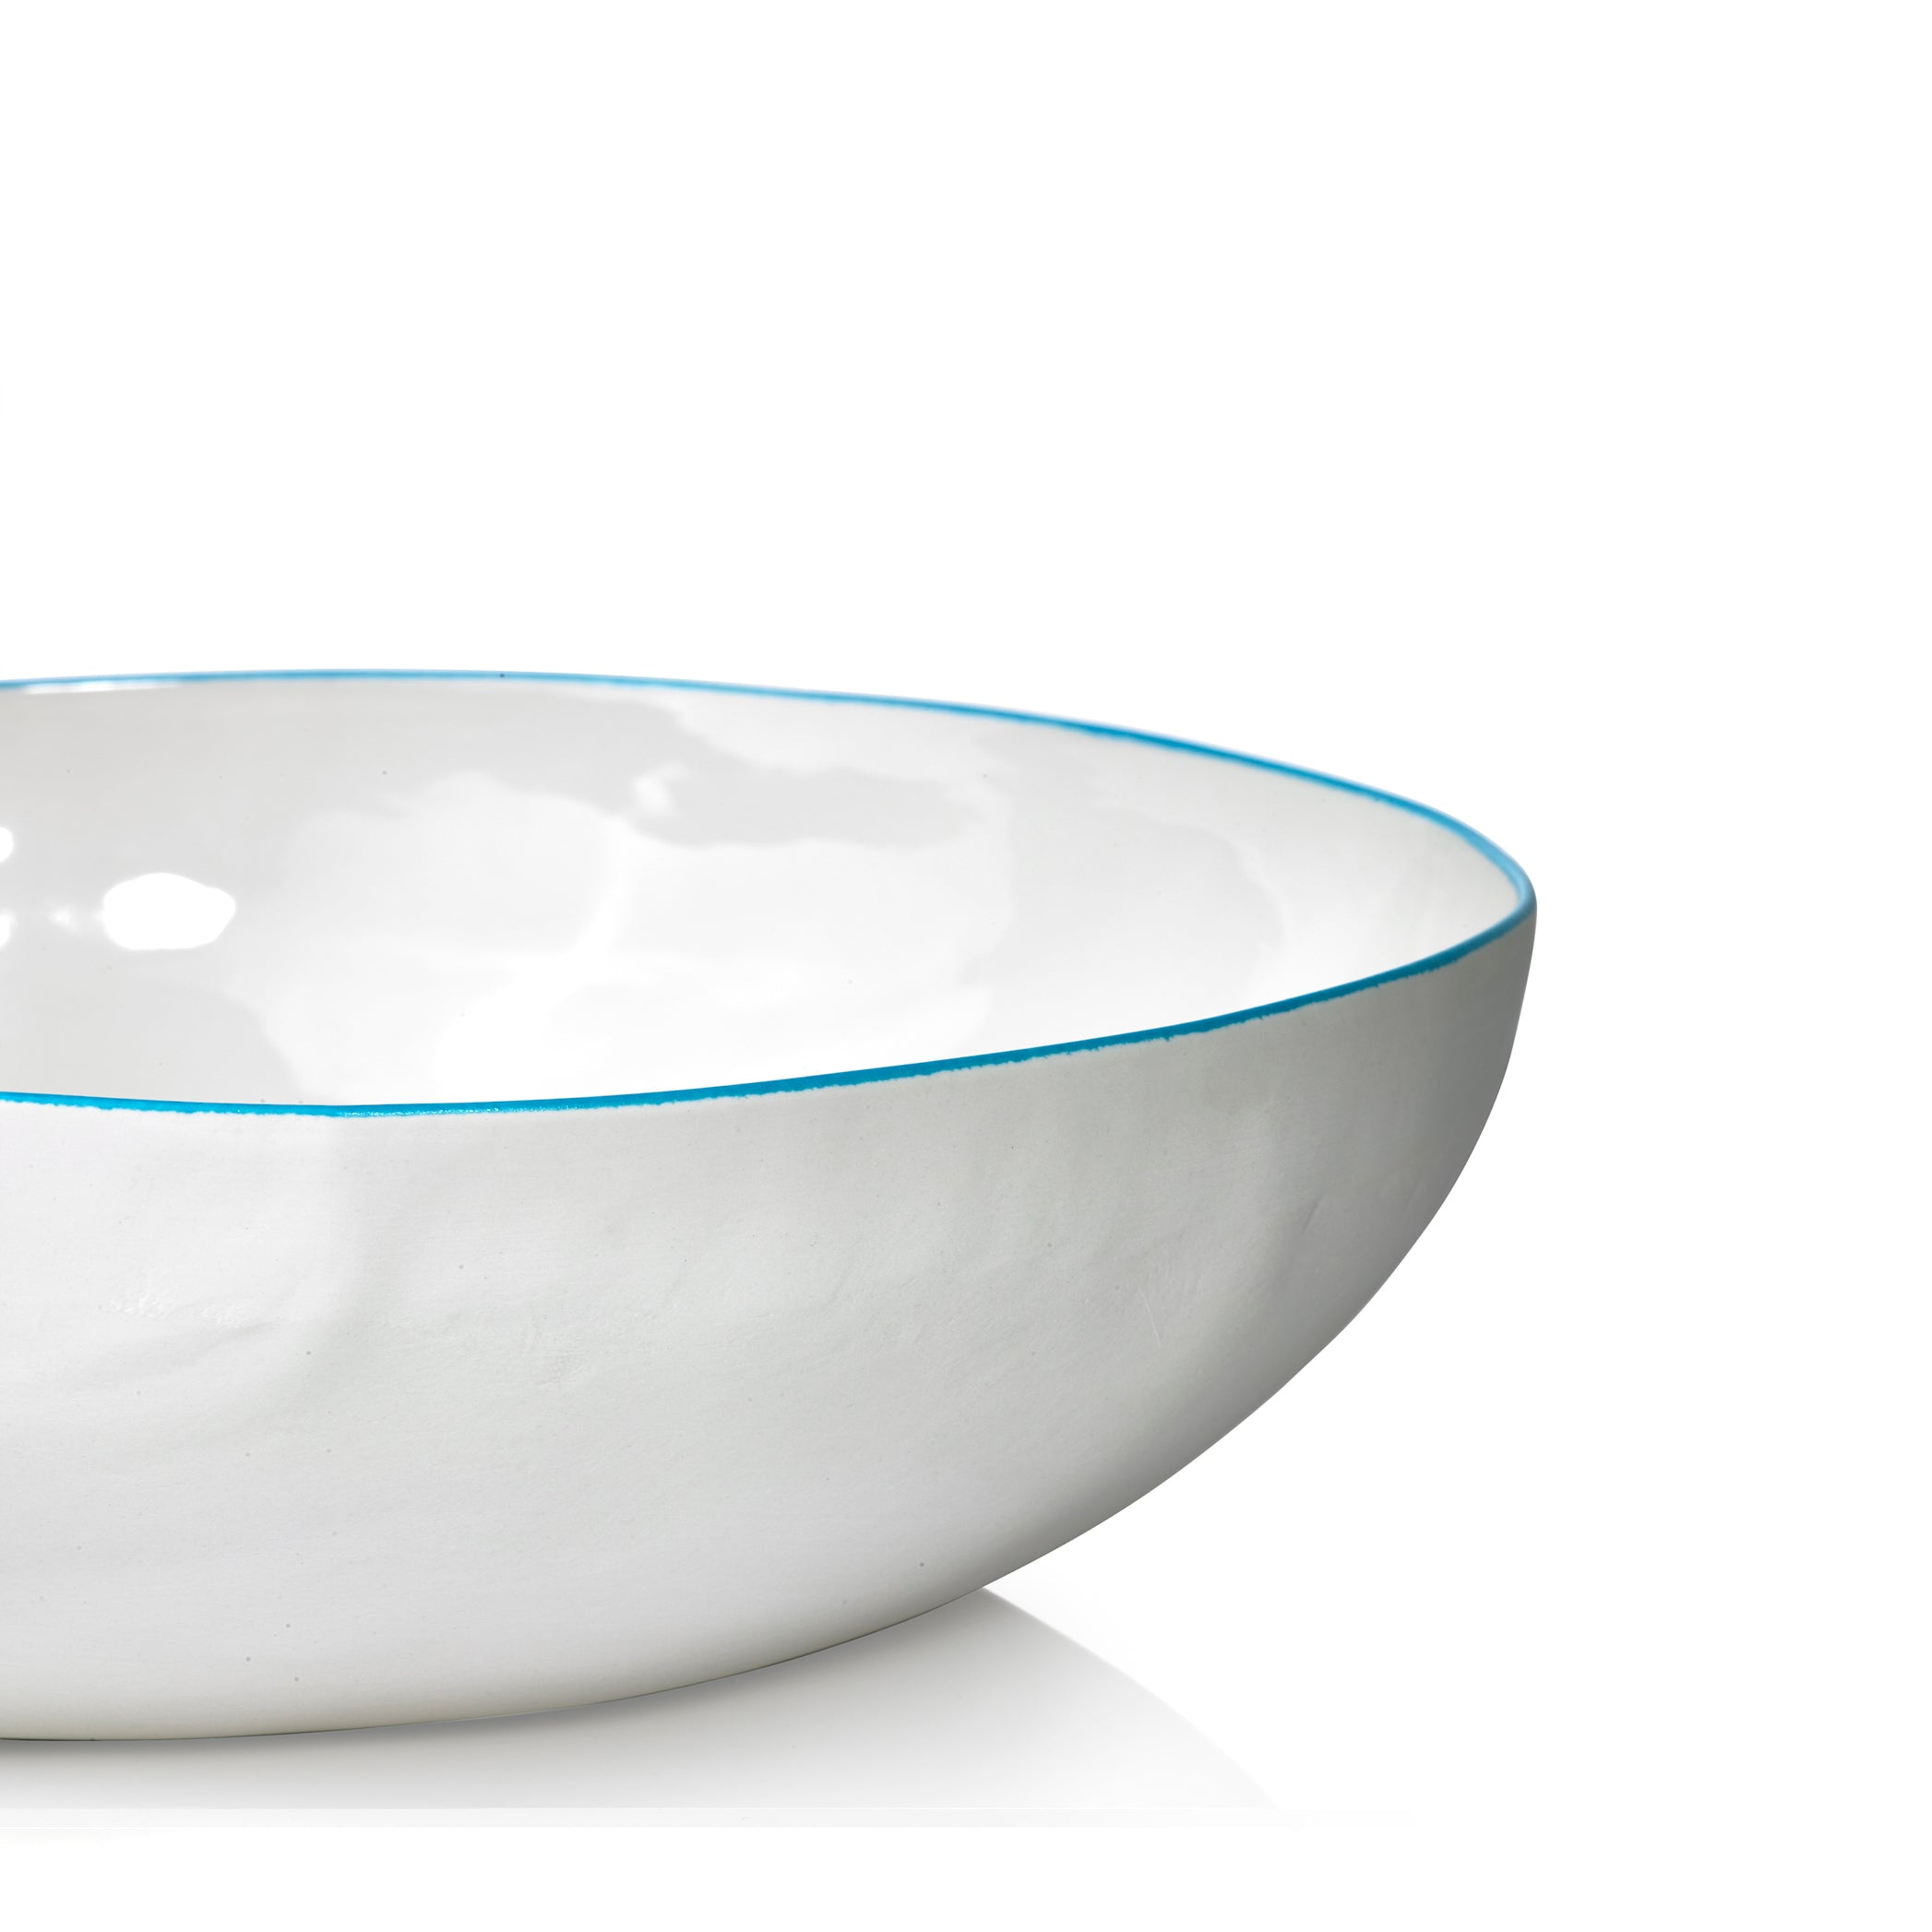 S&B Handmade 30cm Porcelain Medium Salad Bowl with Blue Rim